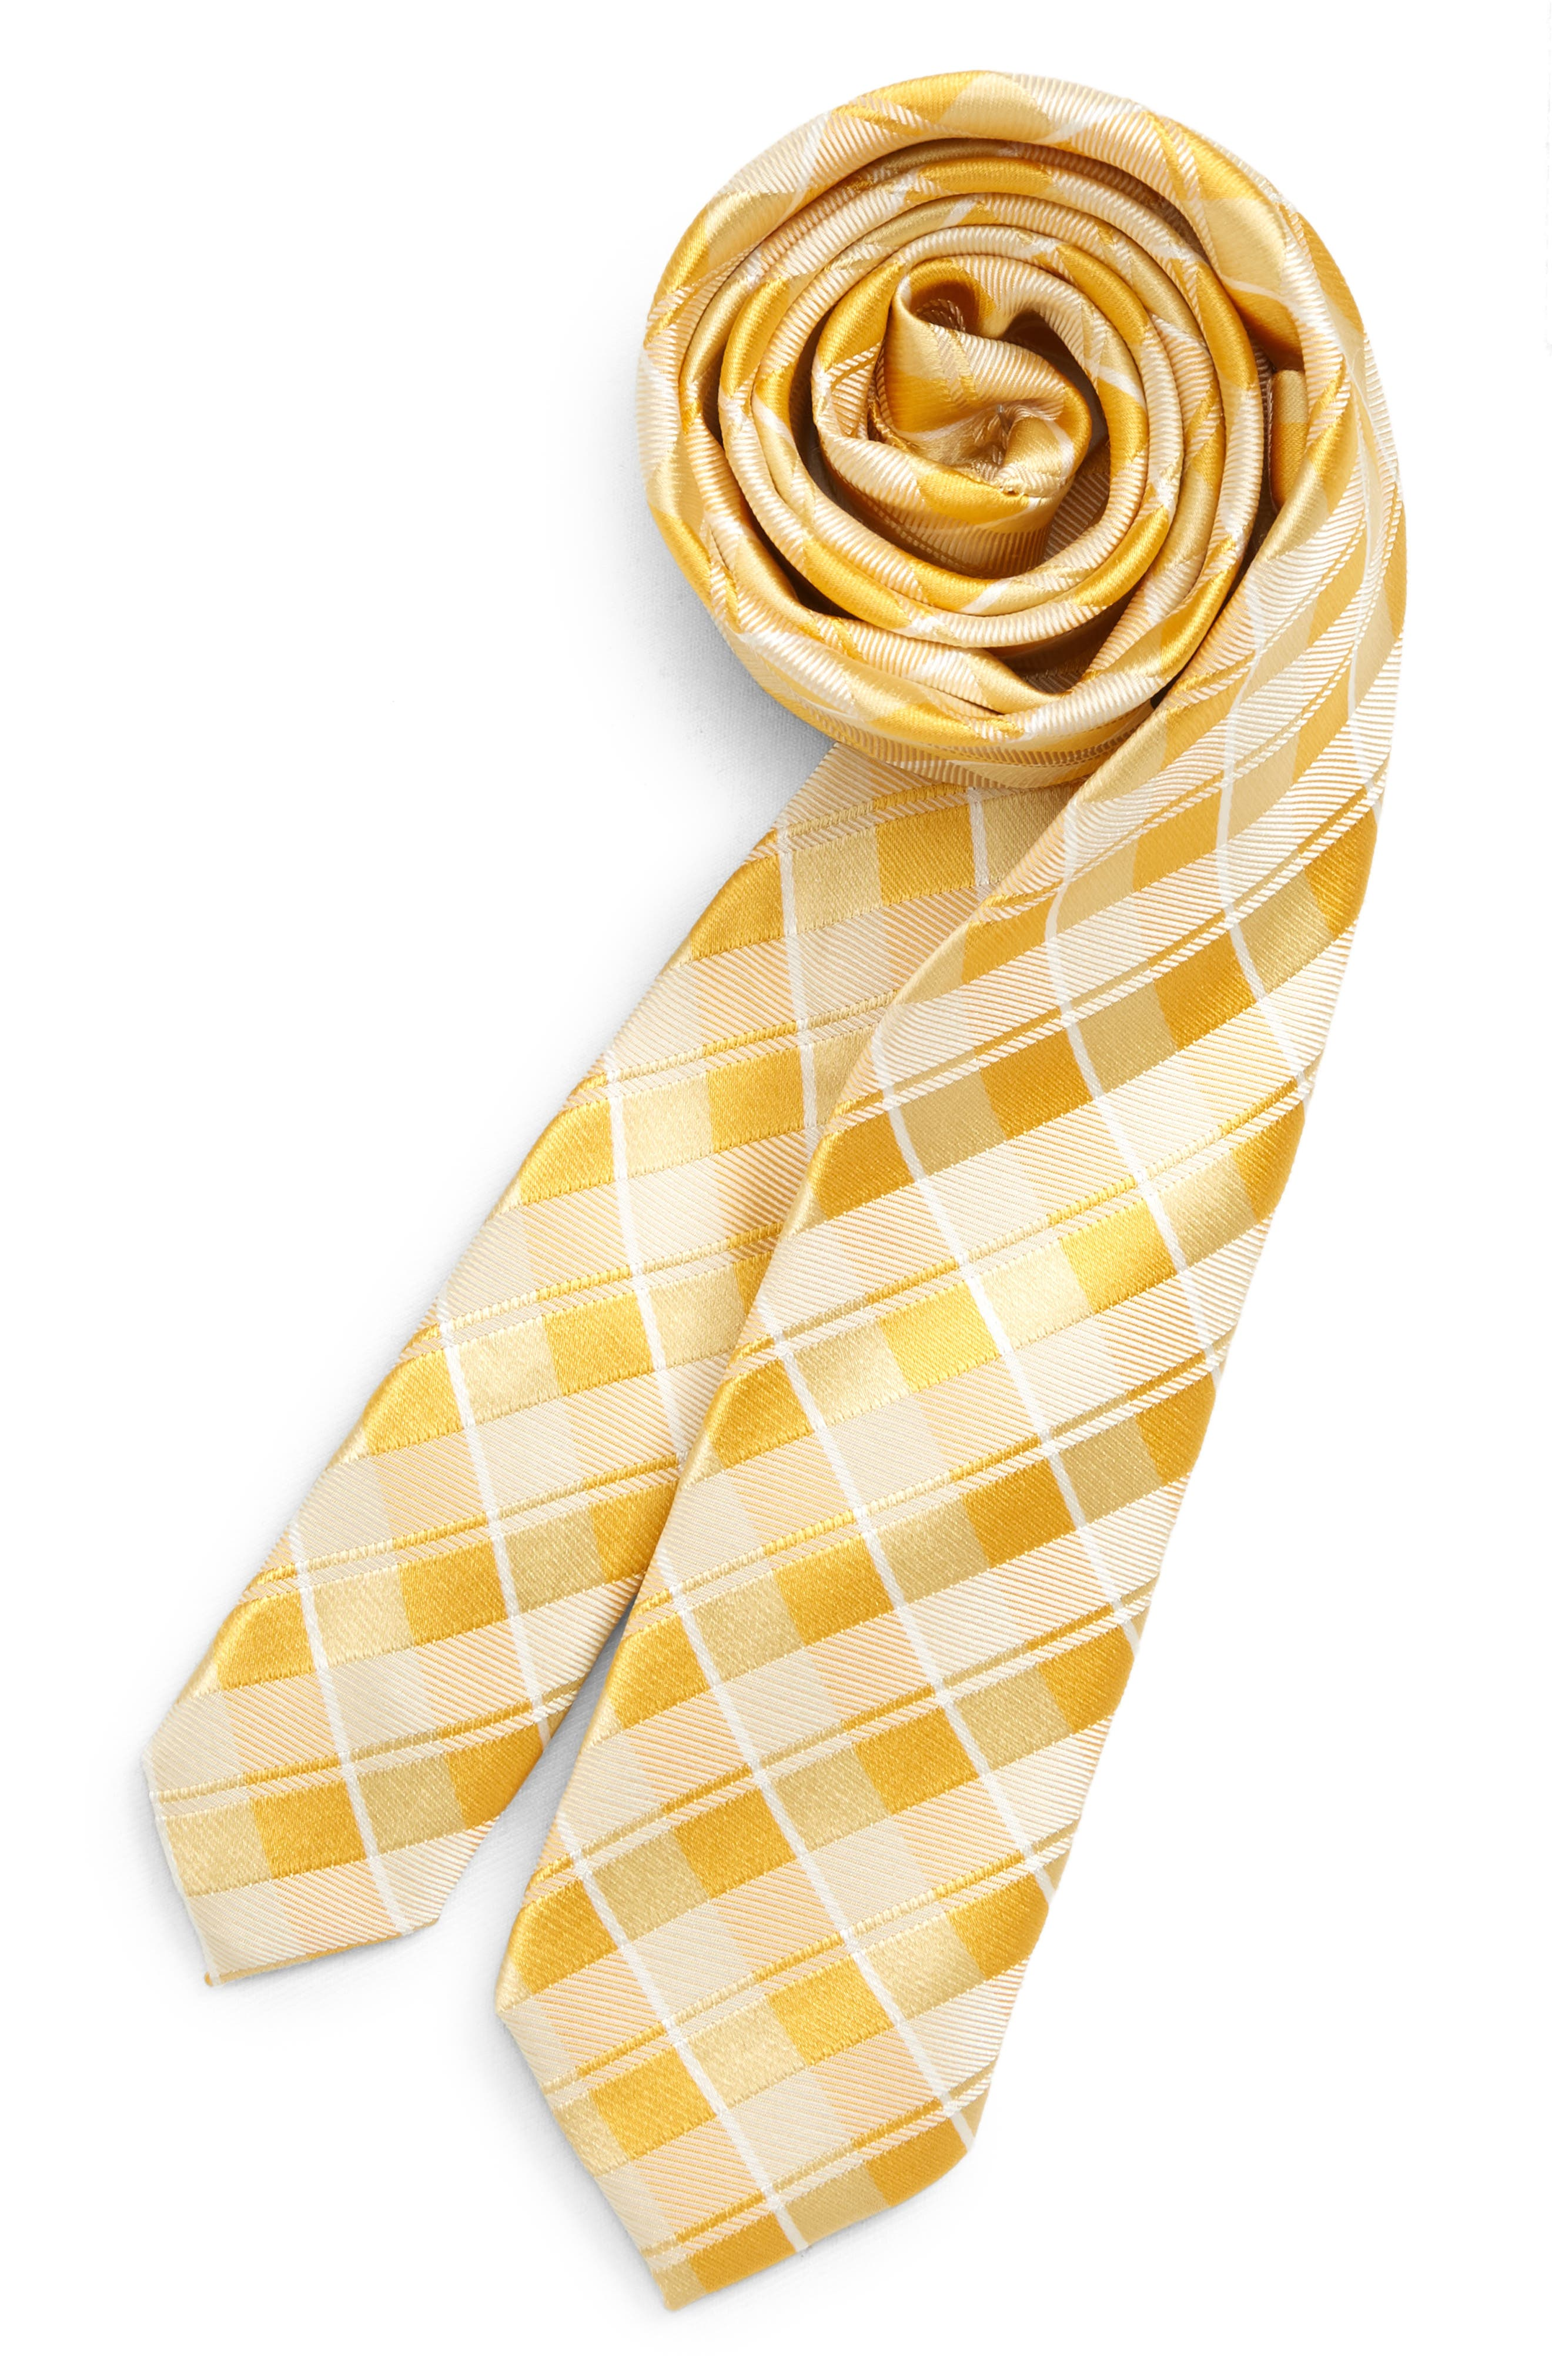 NORDSTROM, Murphy Plaid Silk Tie, Main thumbnail 1, color, YELLOW